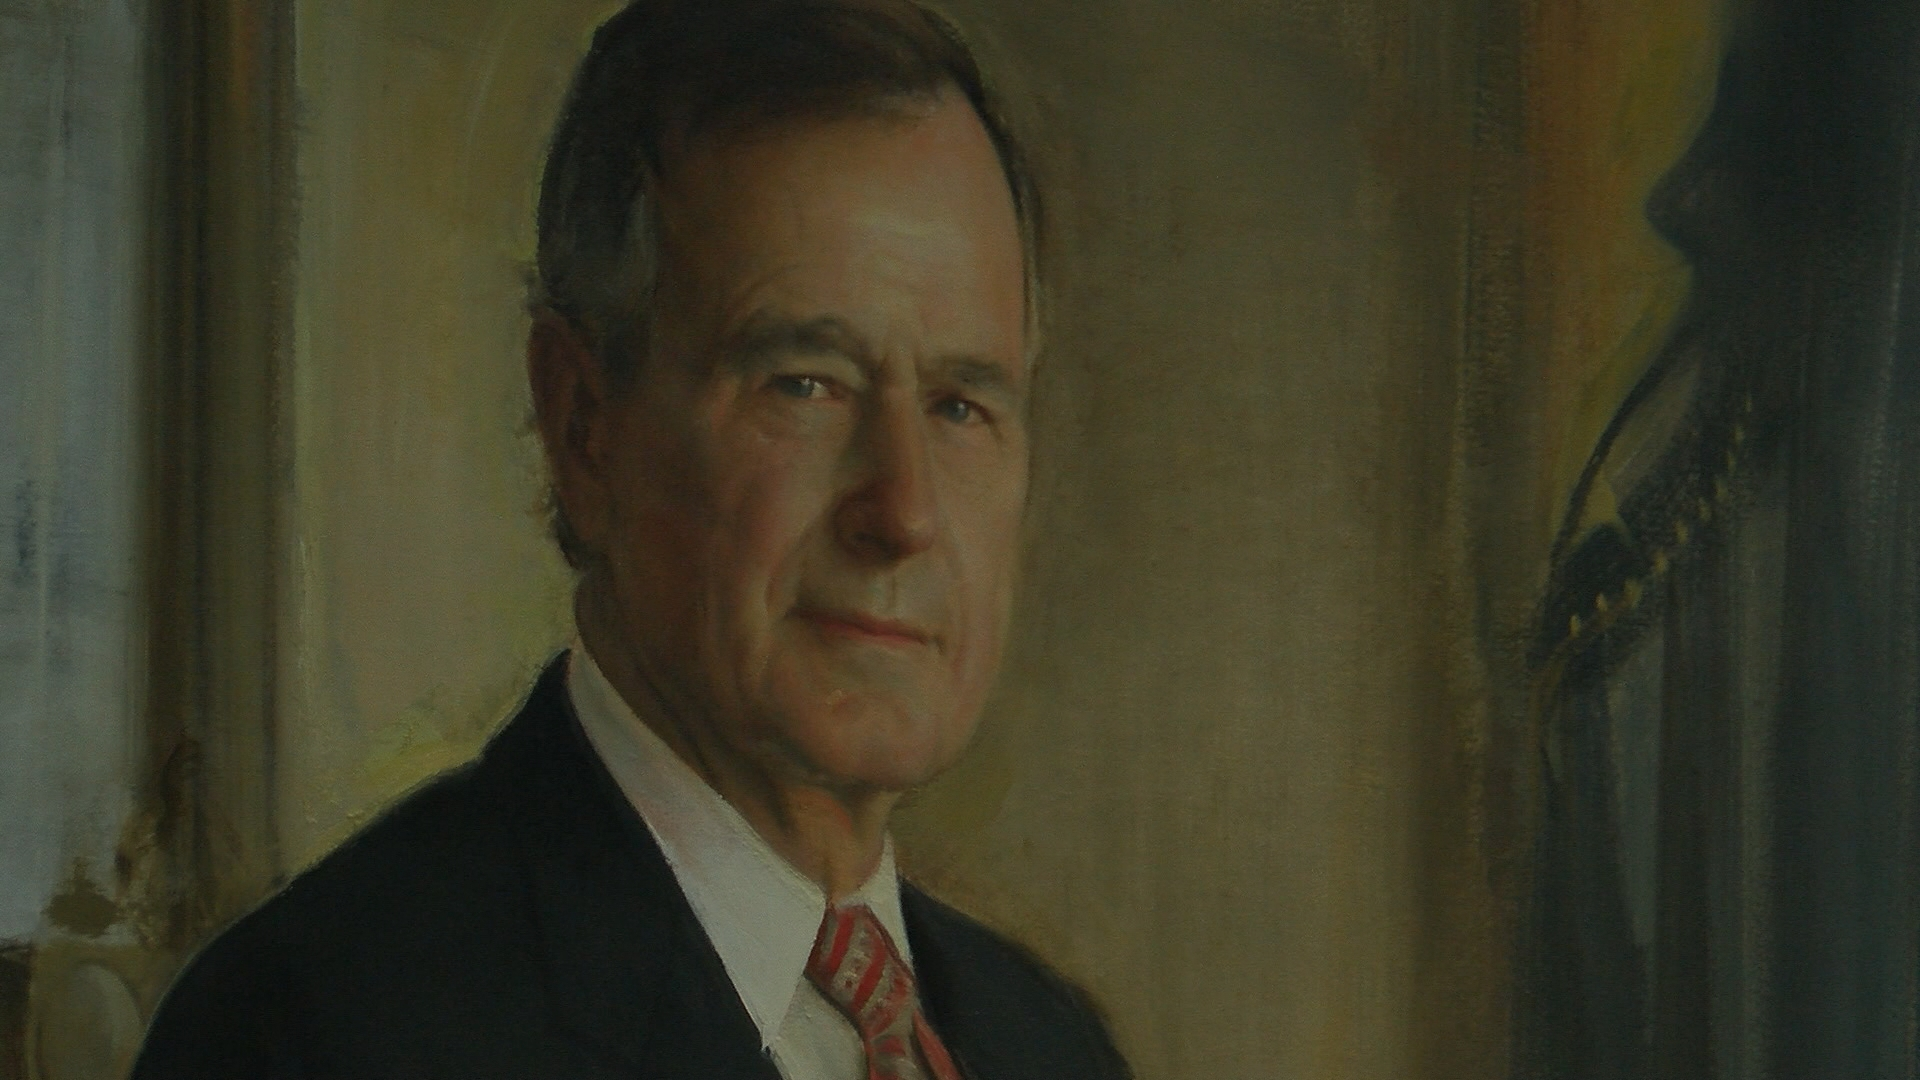 GEORGE HW BUSH PORTRAIT BUSH LIBRARY_1543711098916.jpg-54787063-54787063.jpg